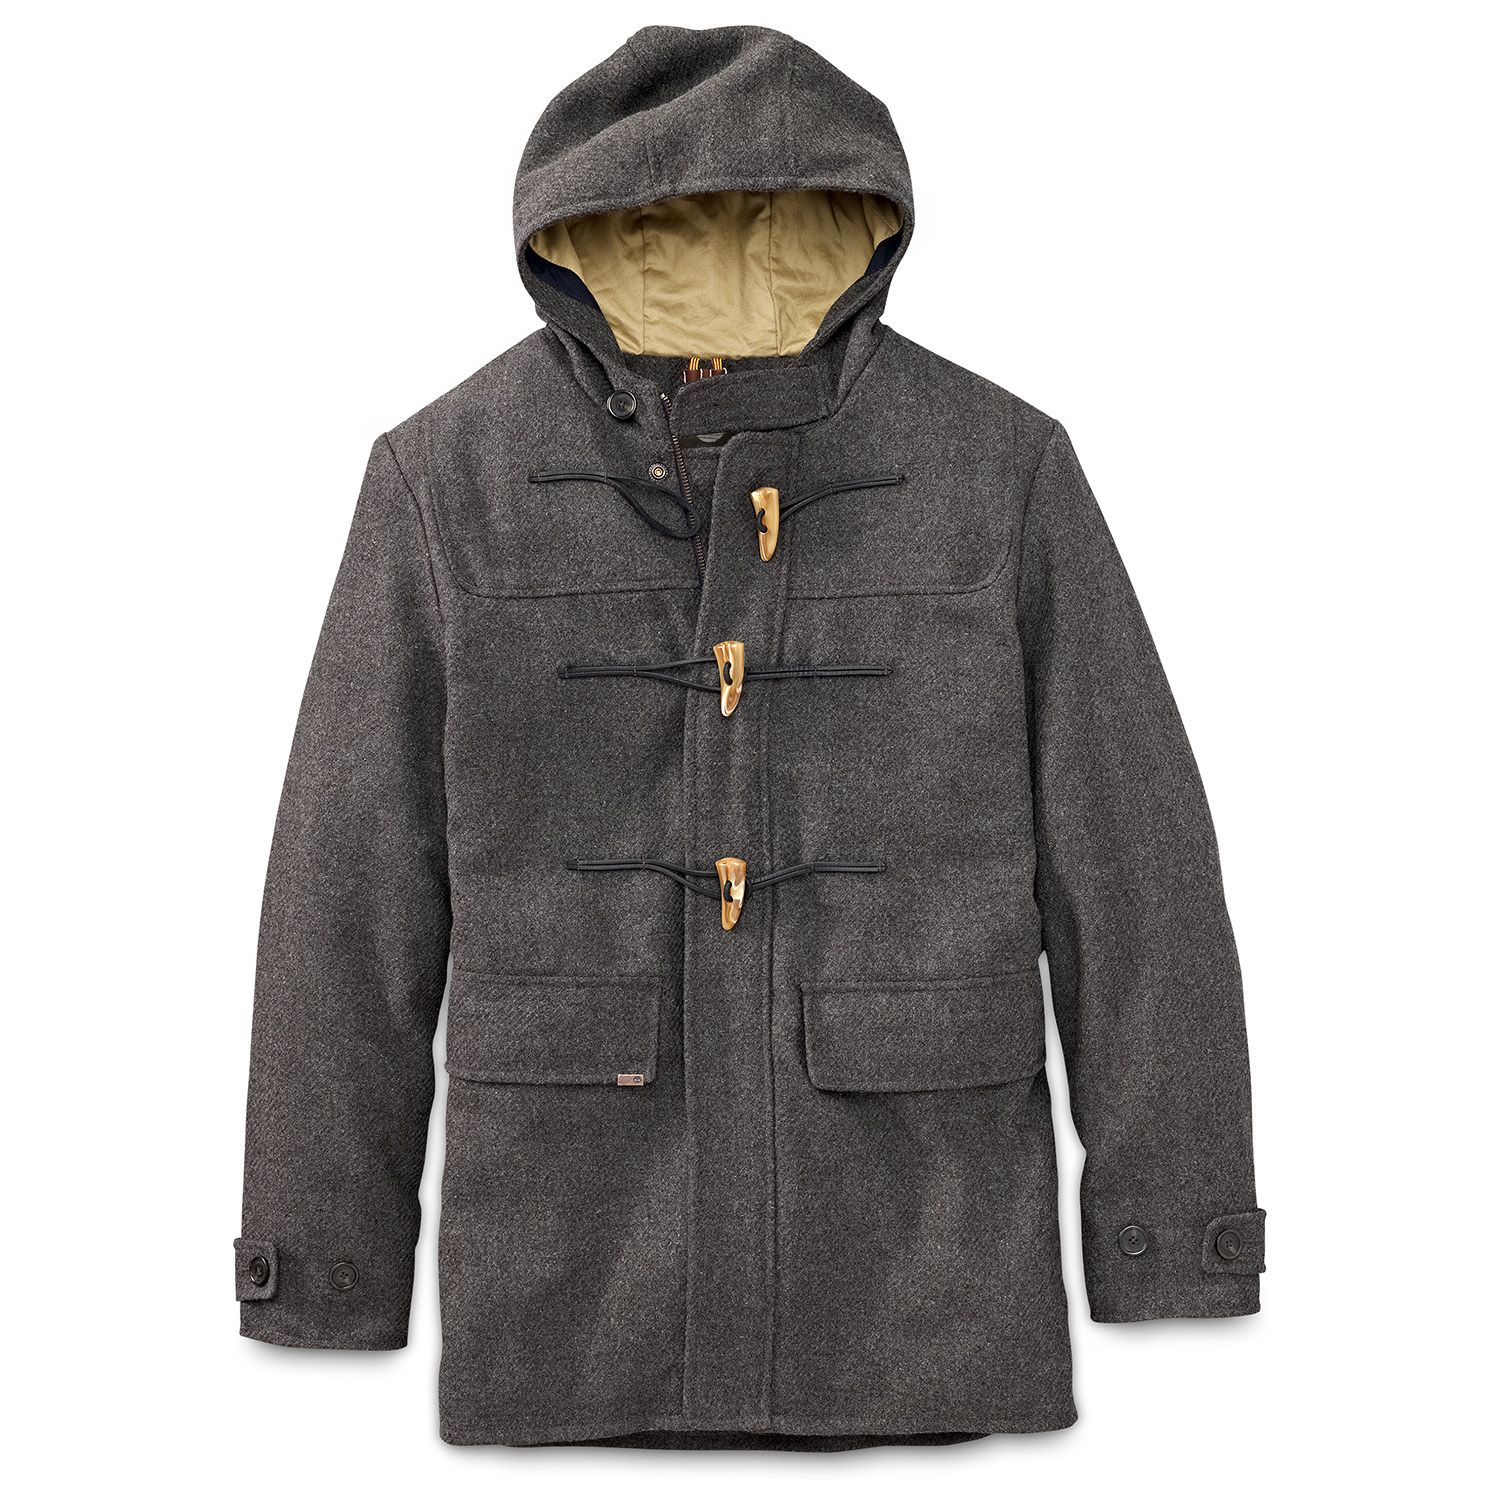 Shrewsbury Peak Waterproof - Duffle Coat imperméable homme ...